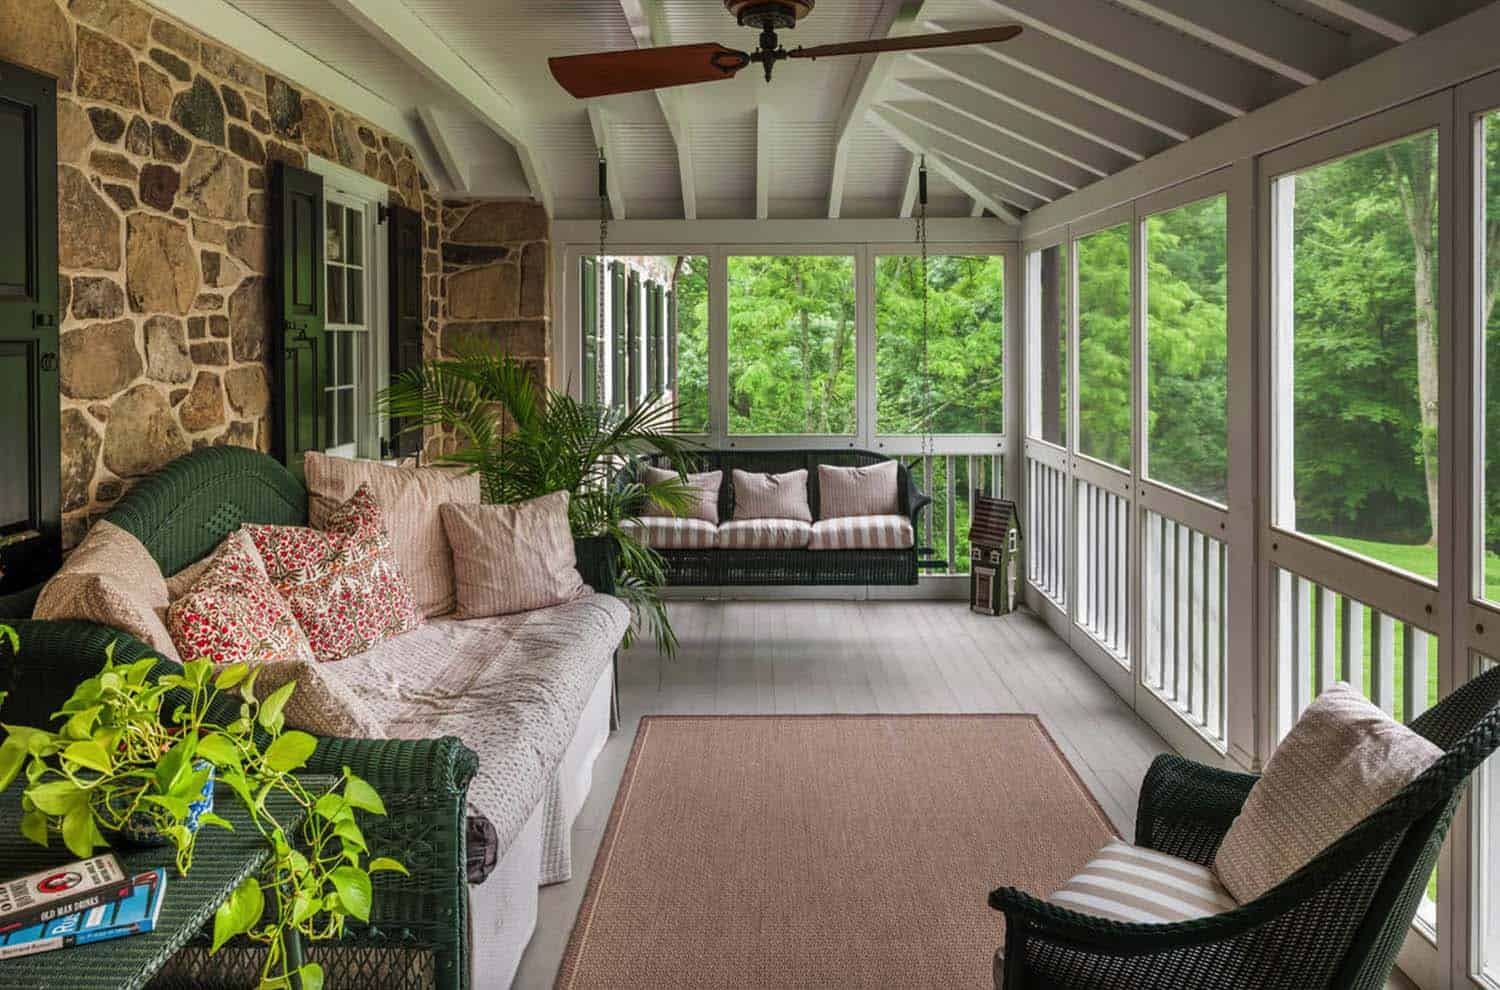 screened porch design ideas 09 1 kindesign - Porch Ideas